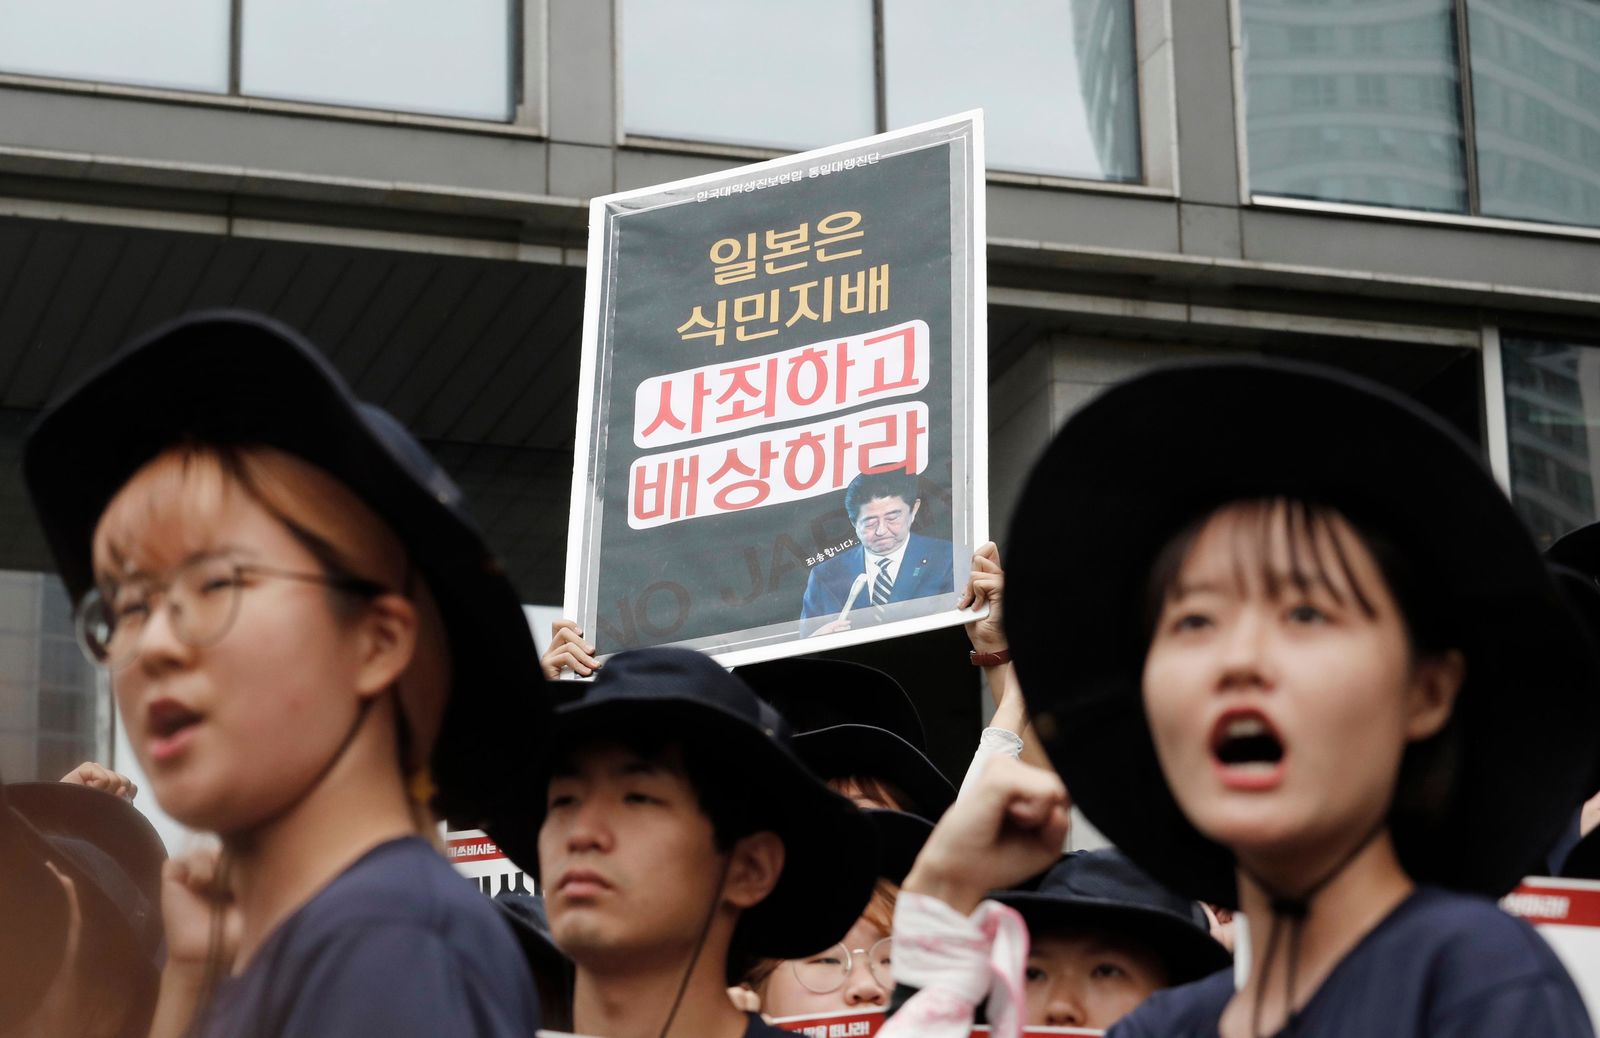 South Korean college students with a board showing an image of Japanese Prime Minister Shinzo Abe stage a rally to denounce Japan's new trade restrictions on South Korea in front of the office of Mitsubishi Corp. in Seoul, South Korea, Wednesday, Aug. 7, 2019.{ } (AP Photo/Ahn Young-joon)